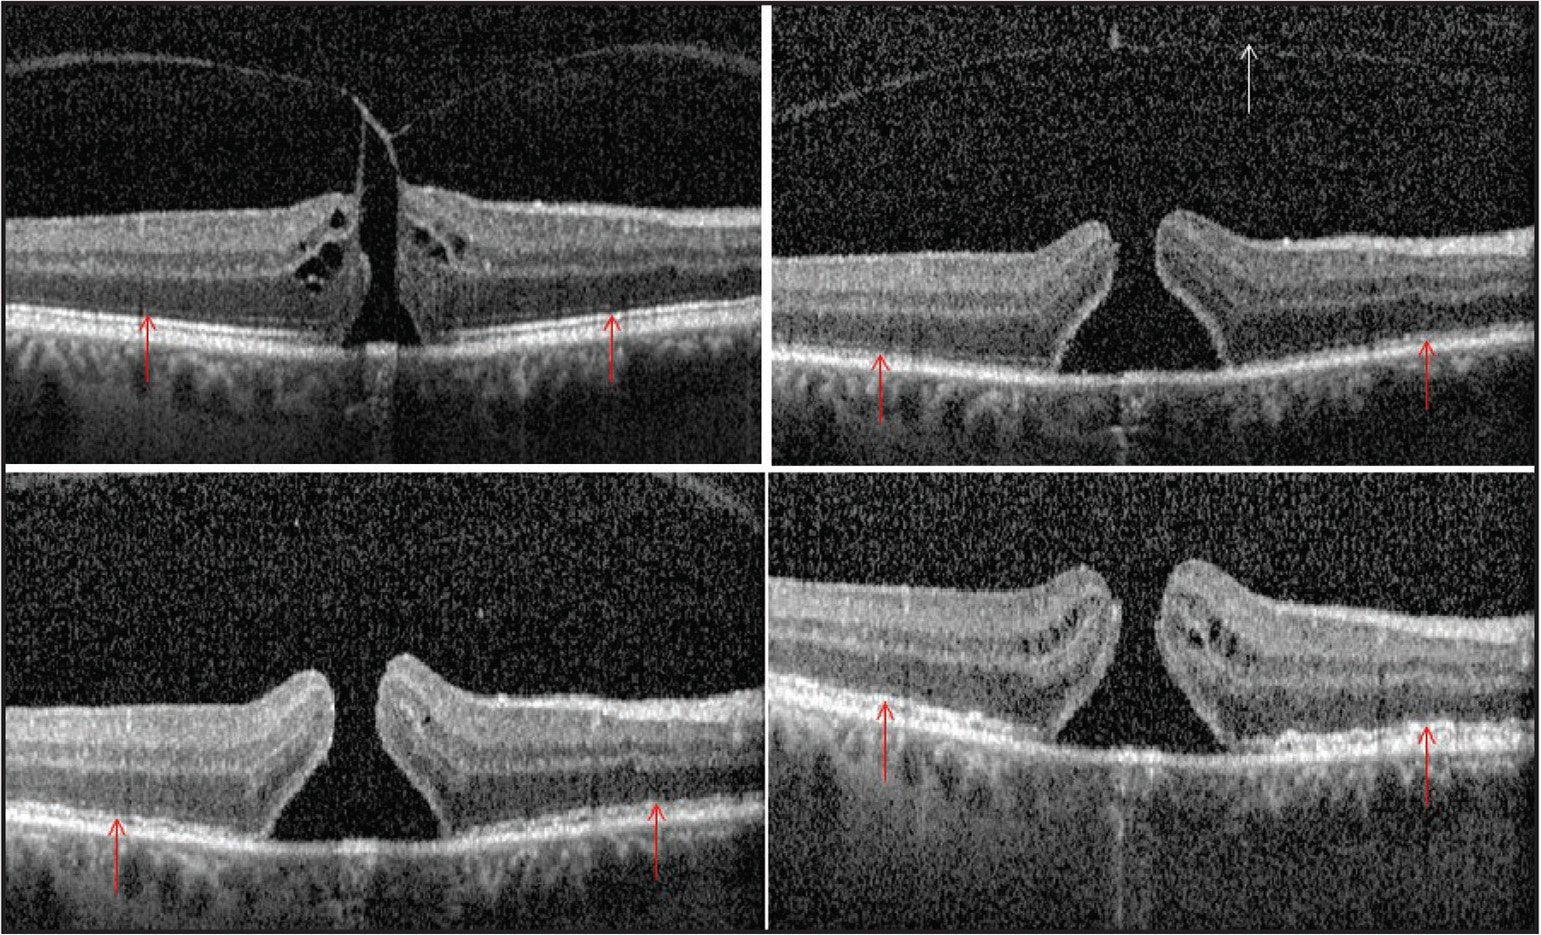 Patient 5. Sixty-four-year-old phakic man with vitreomacular traction and macular hole. At baseline (top left), the images show intact photoreceptor inner segment/outer segment/ellipsoid layer (red arrows). One week after treatment (top right), OCT highlights marked changes in the inner segment/outer segment/ellipsoid layer, showing complete disruption throughout the scan (red arrows). Note that the vitreomacular traction has released (white arrow). Two weeks after treatment (bottom left), the changes in that layer were still evident (red arrows). Five weeks after treatment (bottom right), OCT shows some recovery of the inner segment/outer segment/ellipsoid layer, although it still presents marked irregularity (red arrows).